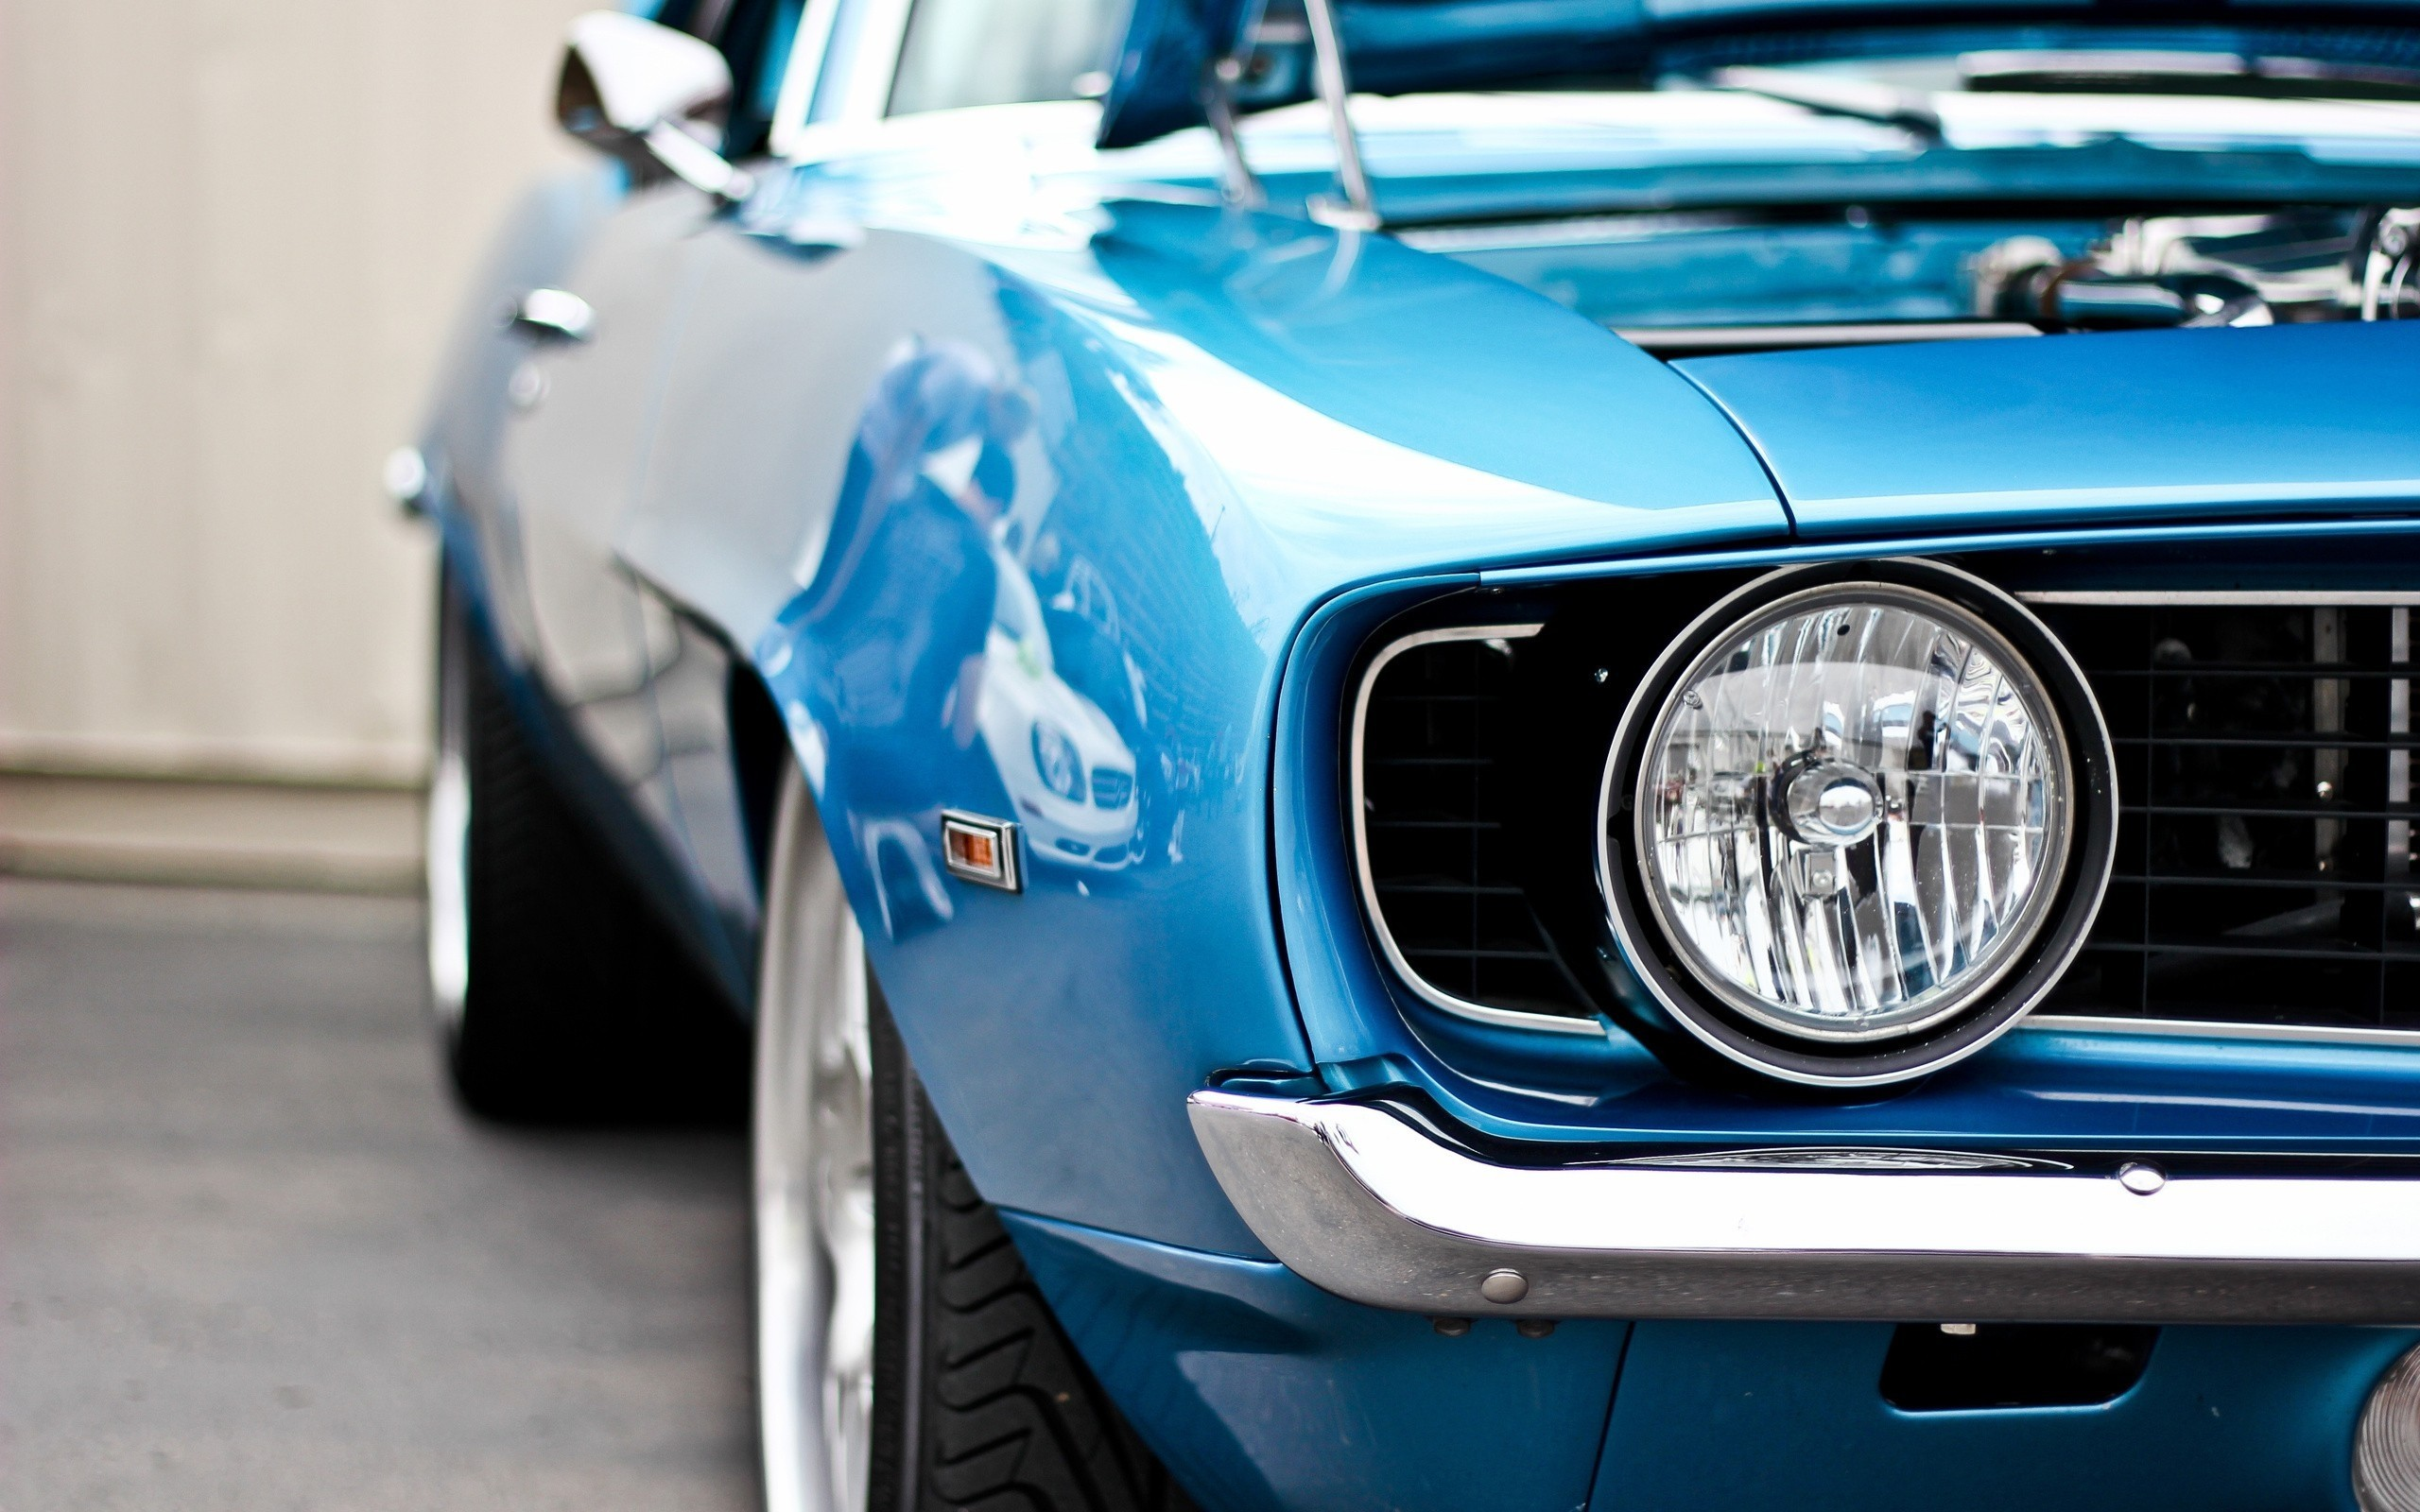 2560x1600 Wallpaper: Ford Mustang Muscle Car